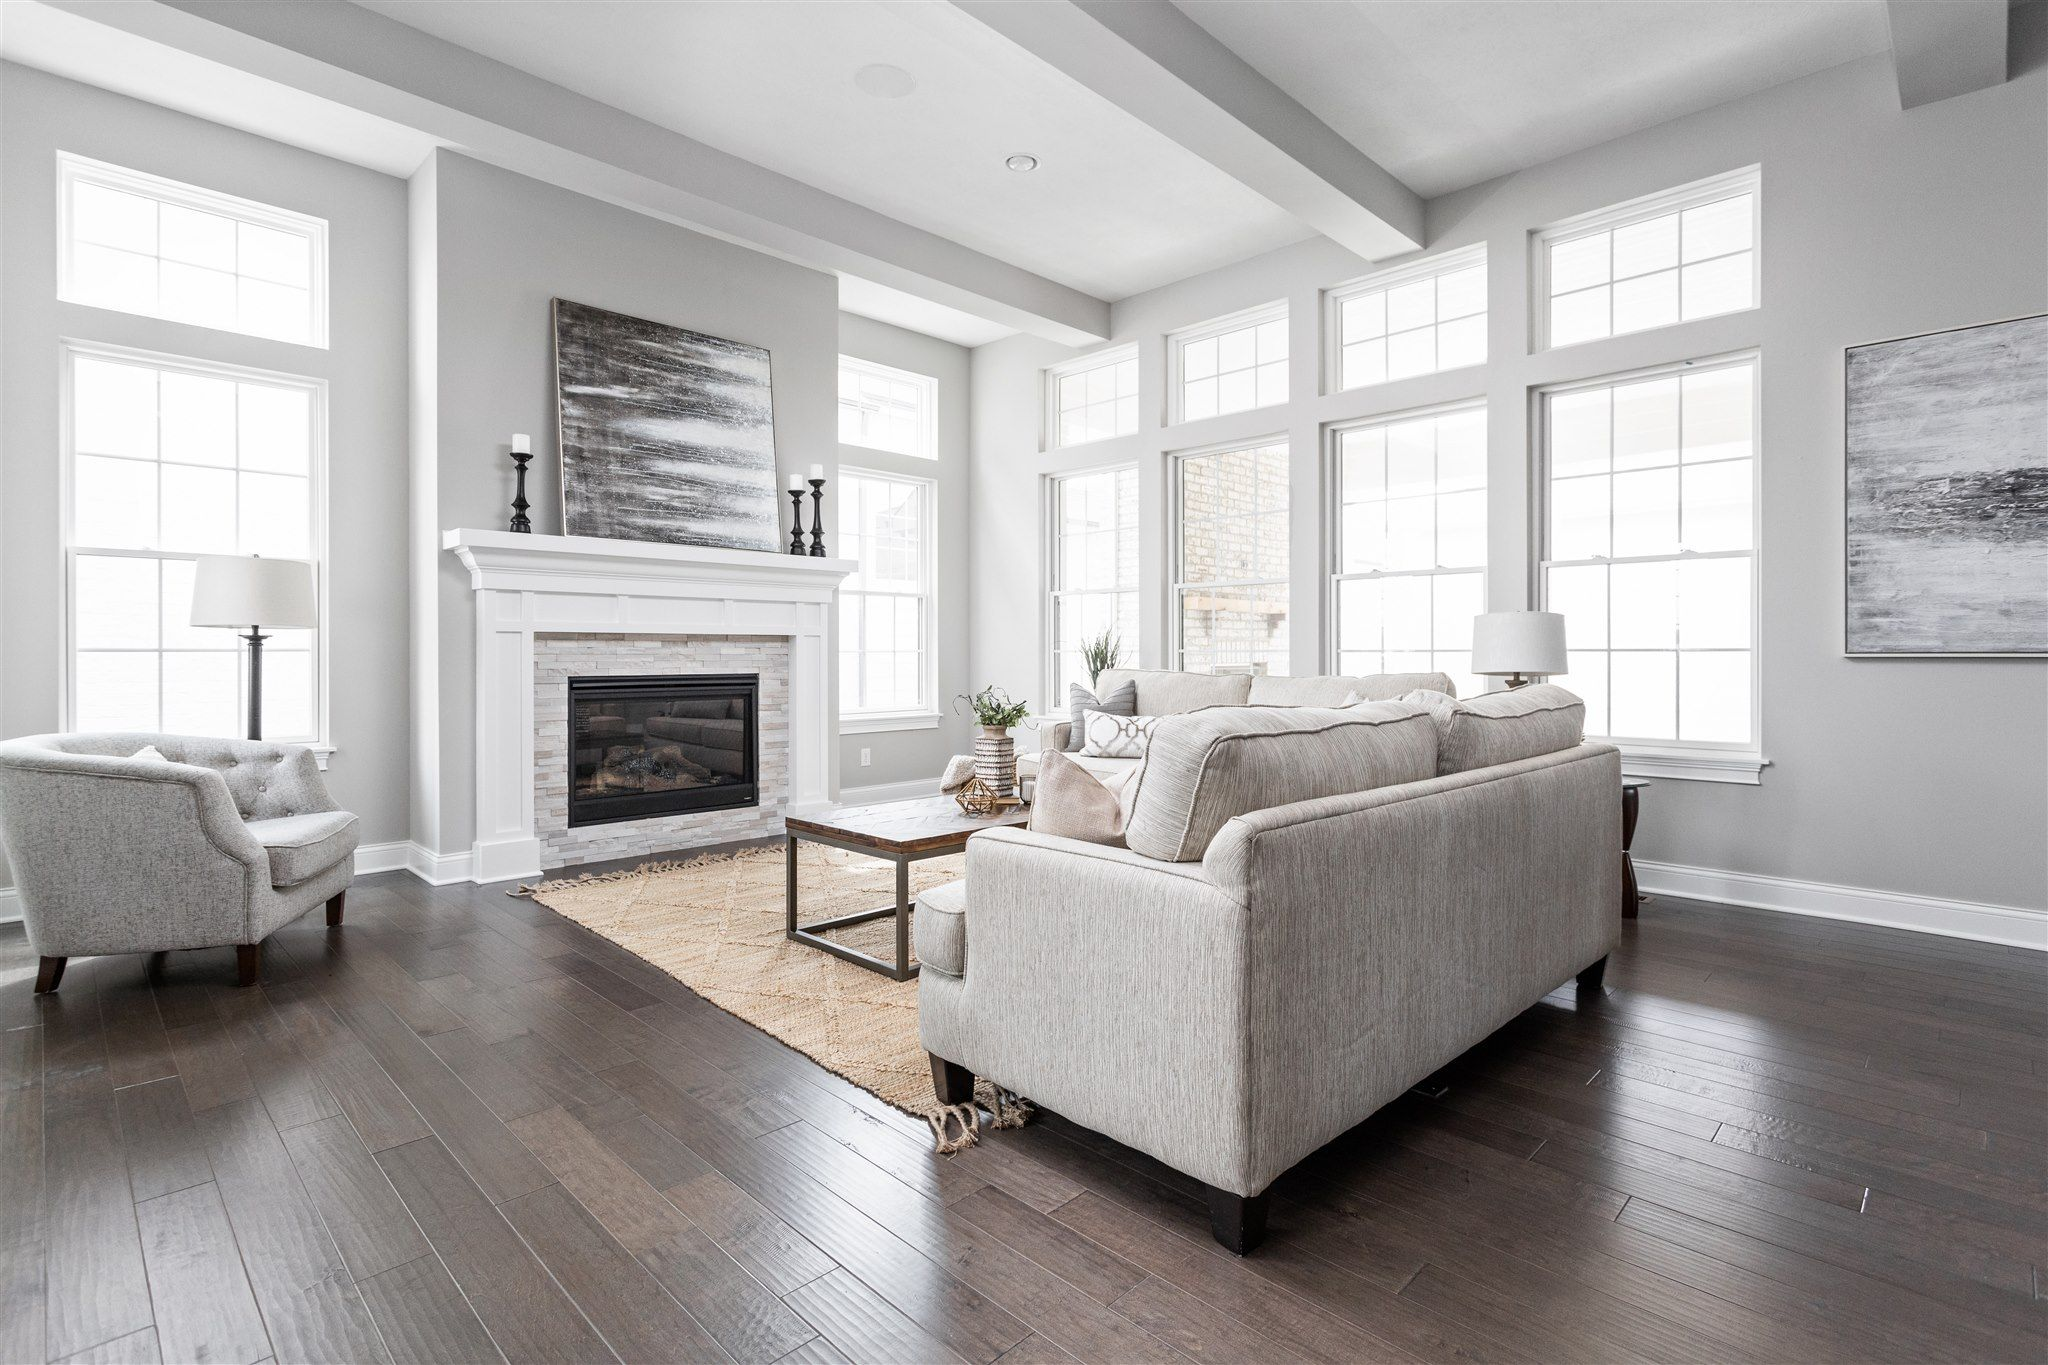 Living Area featured in the Lockerbie 331 By Estridge Homes in Indianapolis, IN